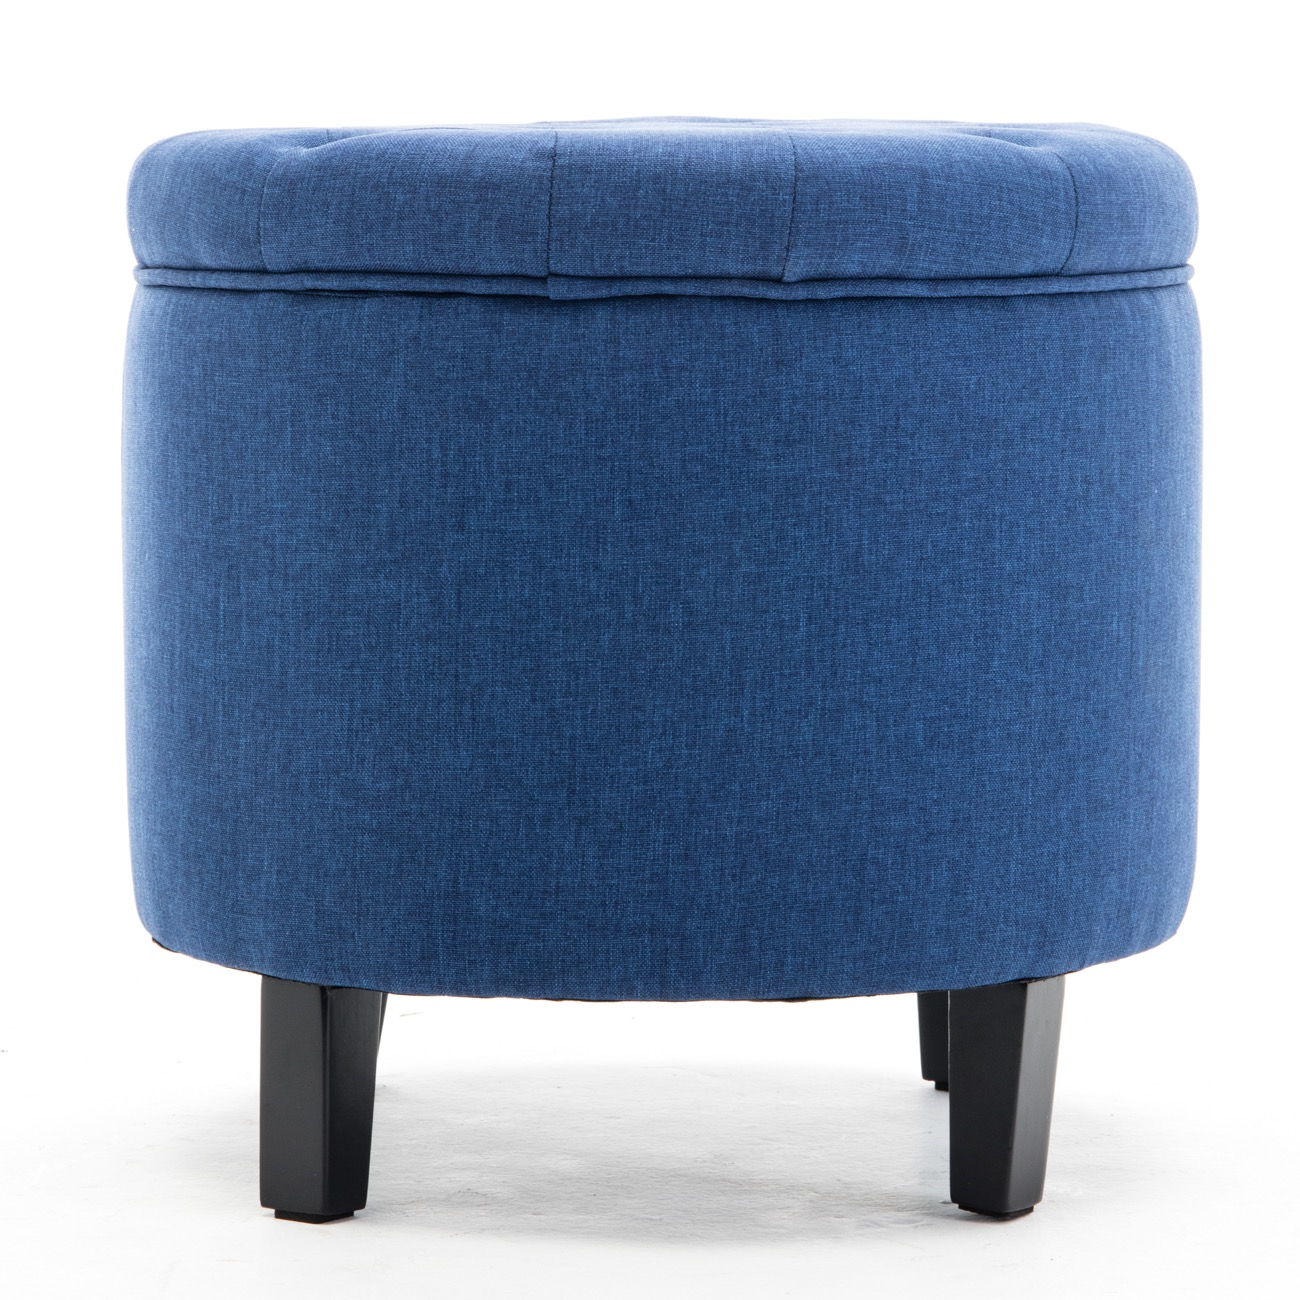 Large Round Tufted Ottoman Footstool Seat Living Room